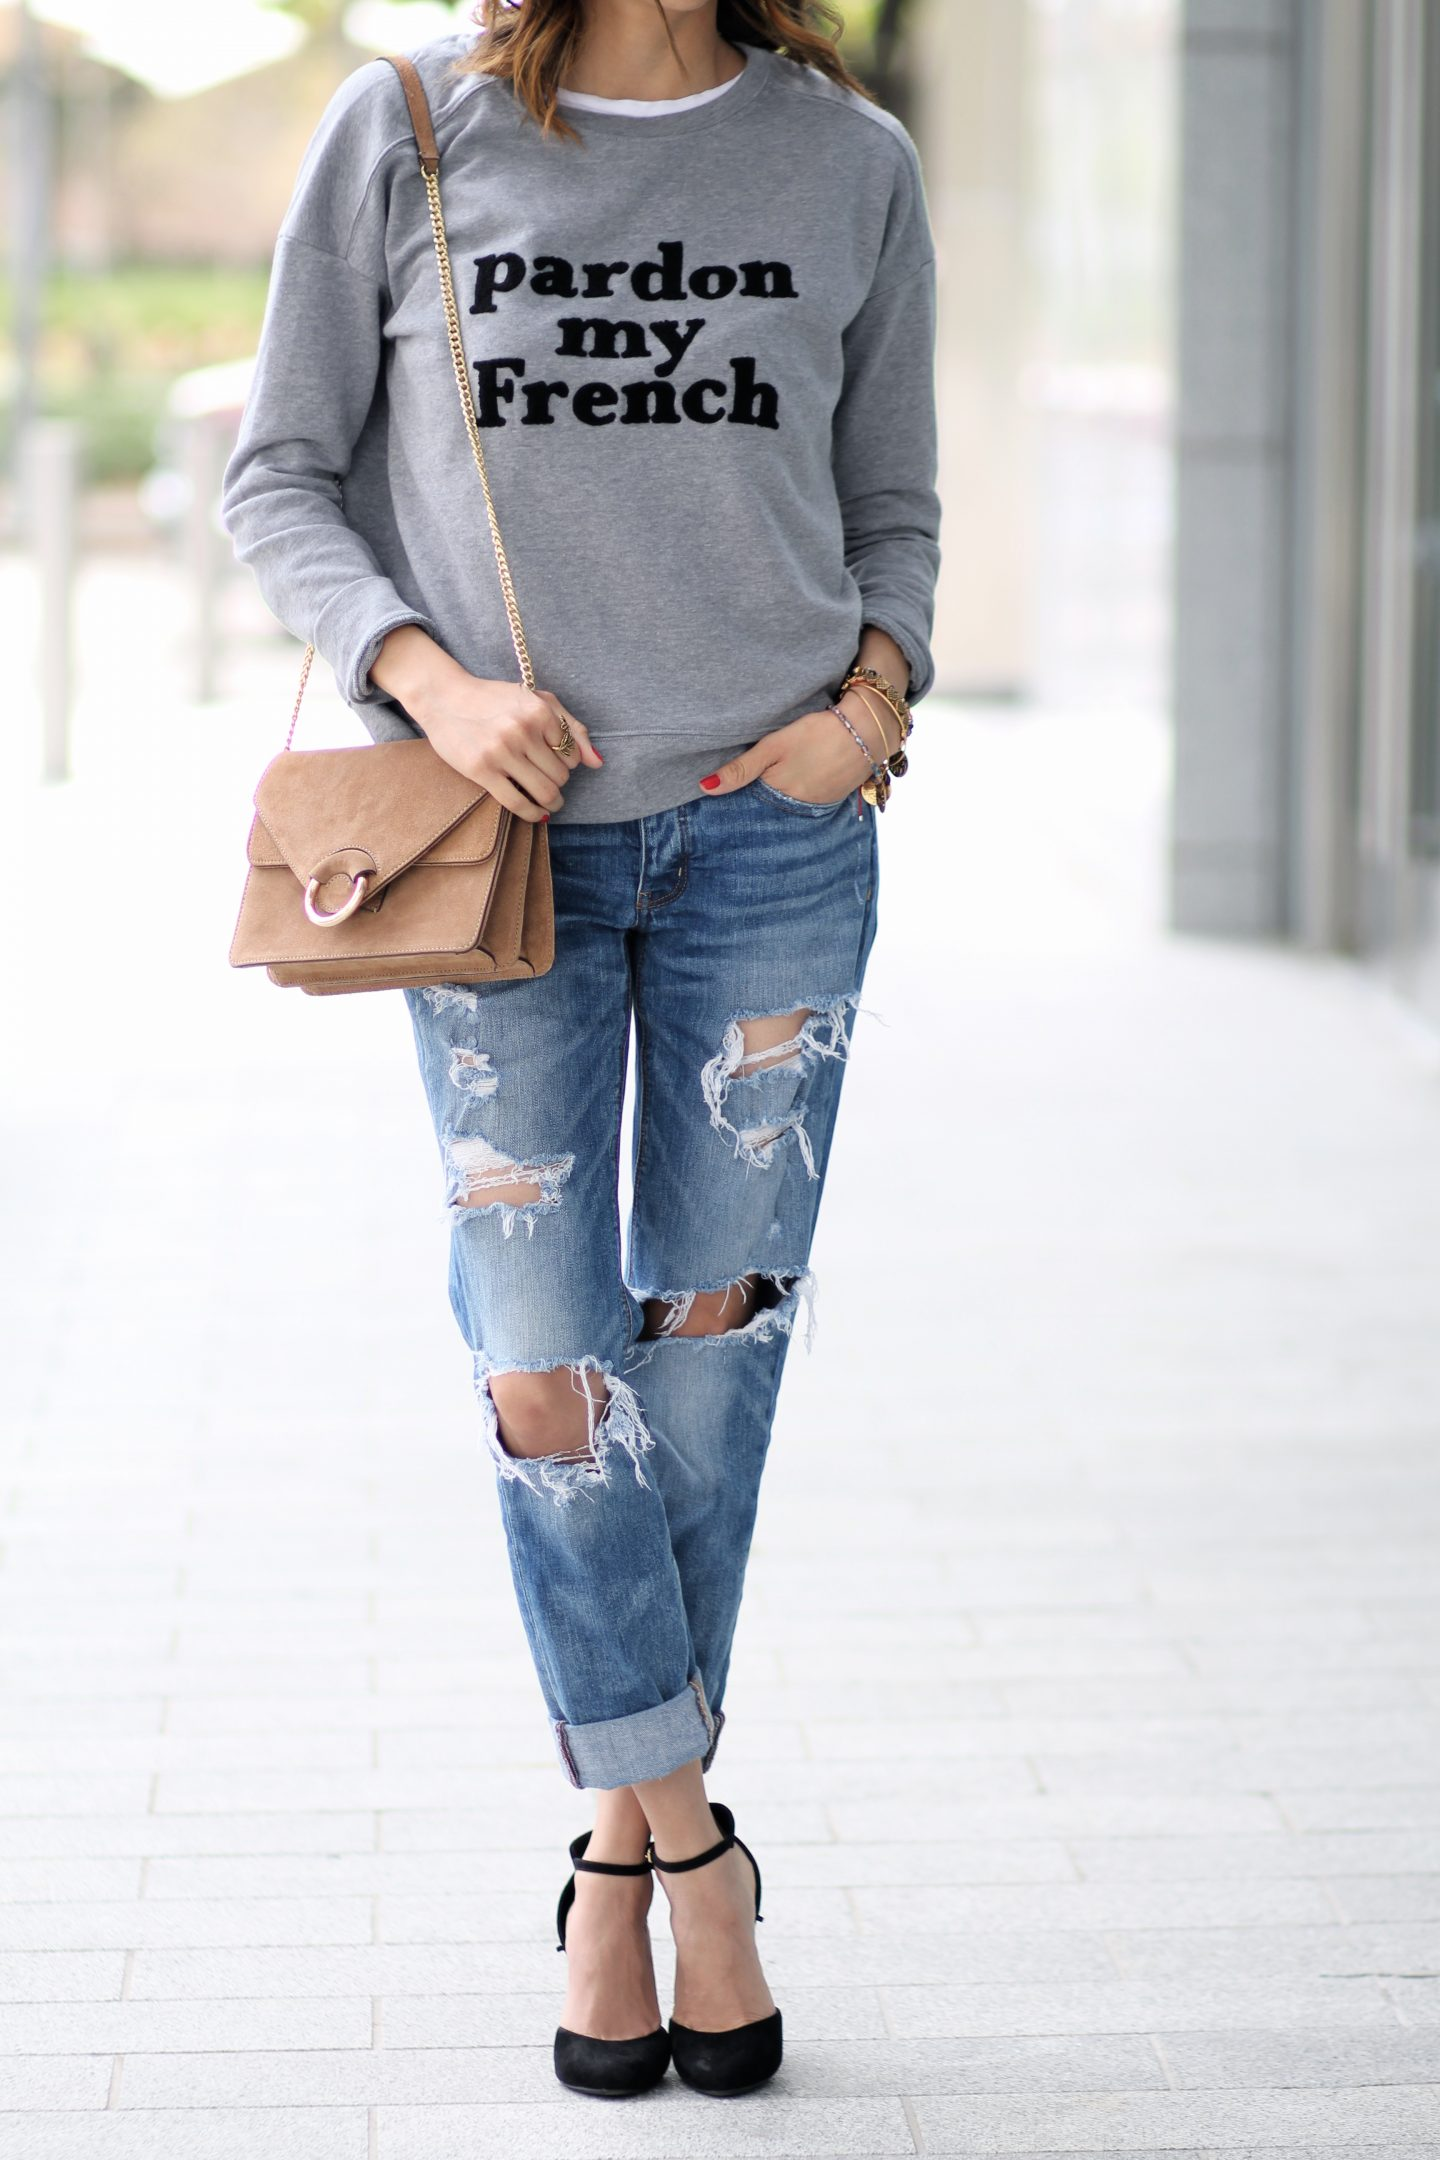 3 Tips for Looking Cool-Girl Chic in A Sweatshirt & Jeans